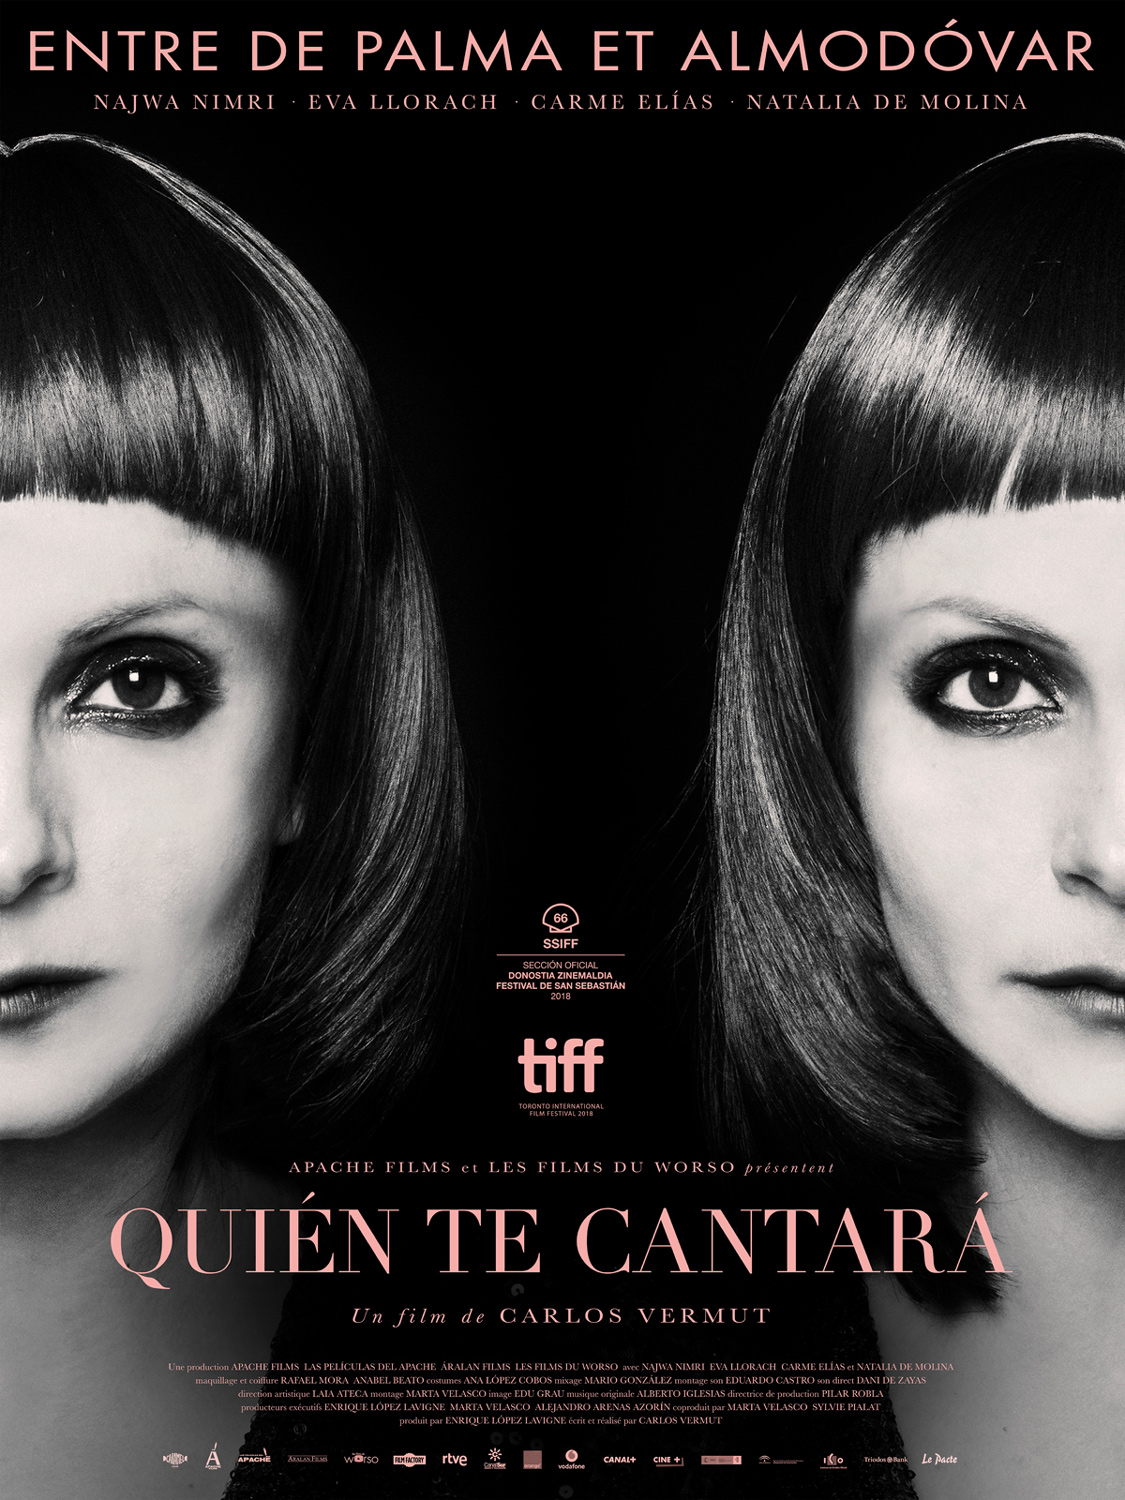 Quien-Te-Cantara-French-Poster